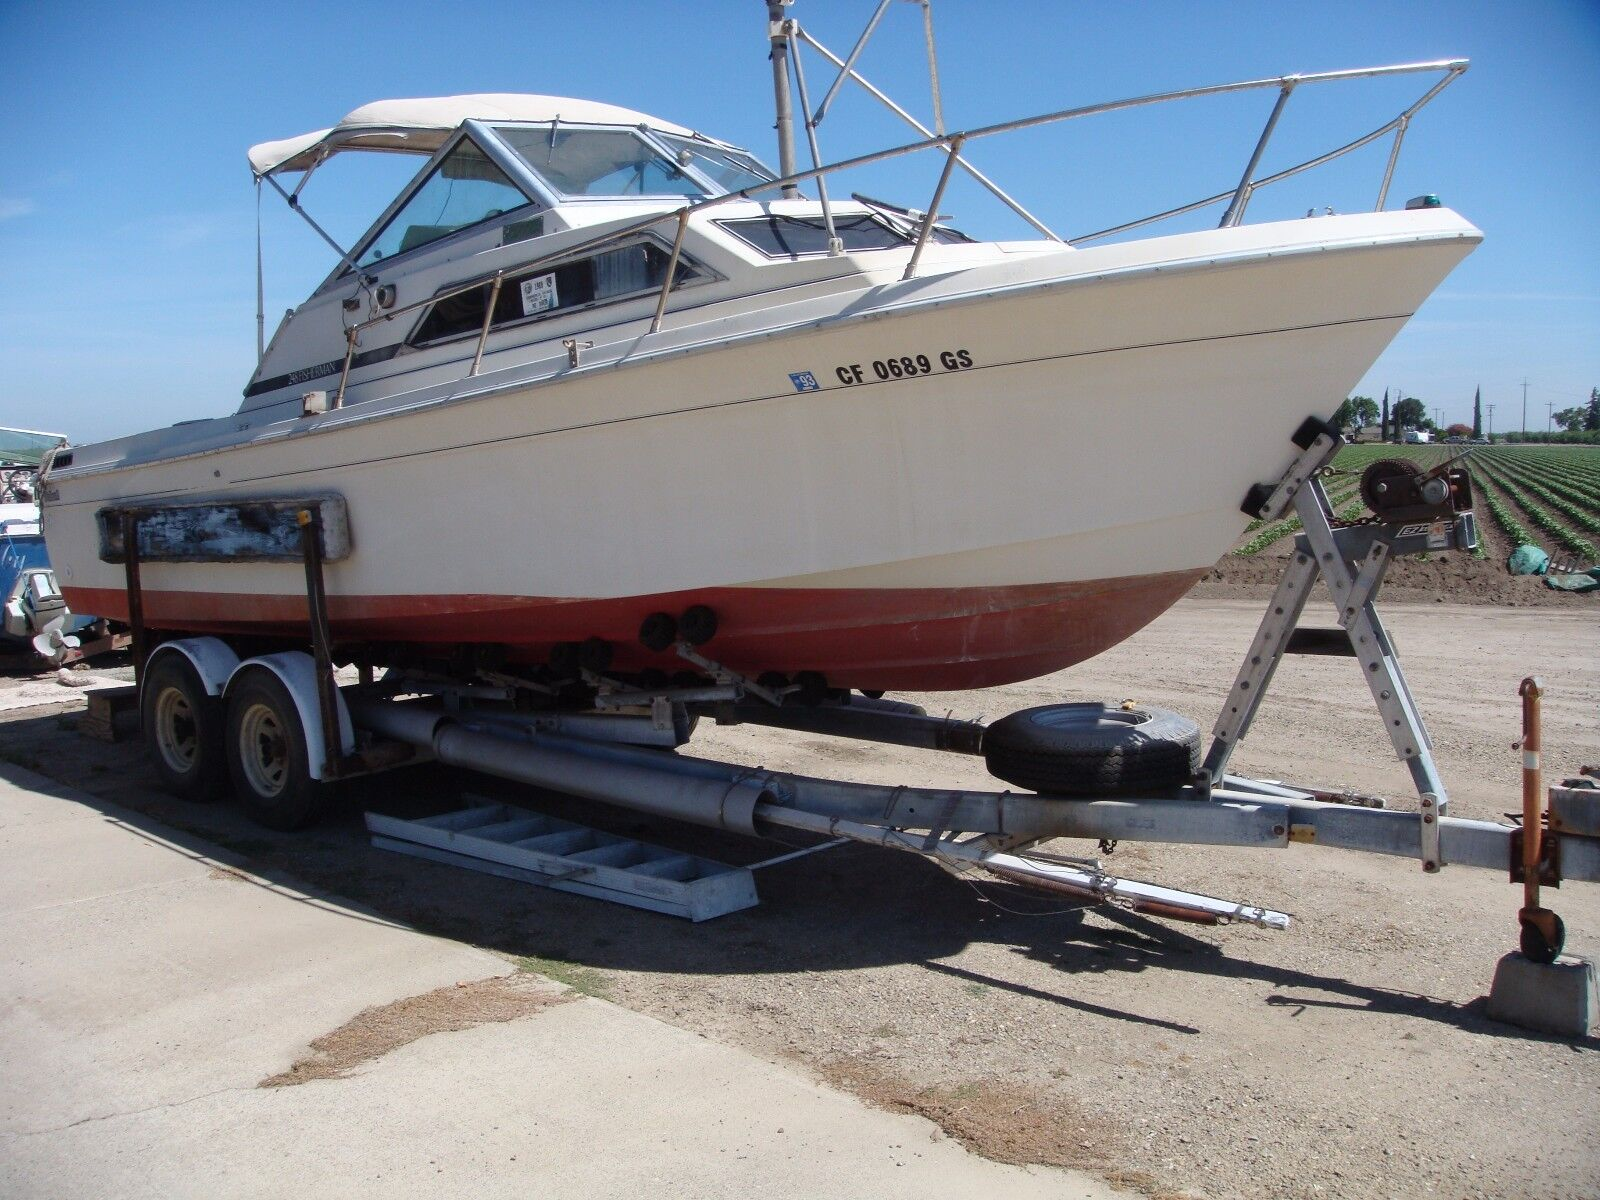 1980 WELLCRAFT 25 FT  SPORTFISHER AND 1979 WELLCRAFT DONOR BOAT 2 BOATS !!!